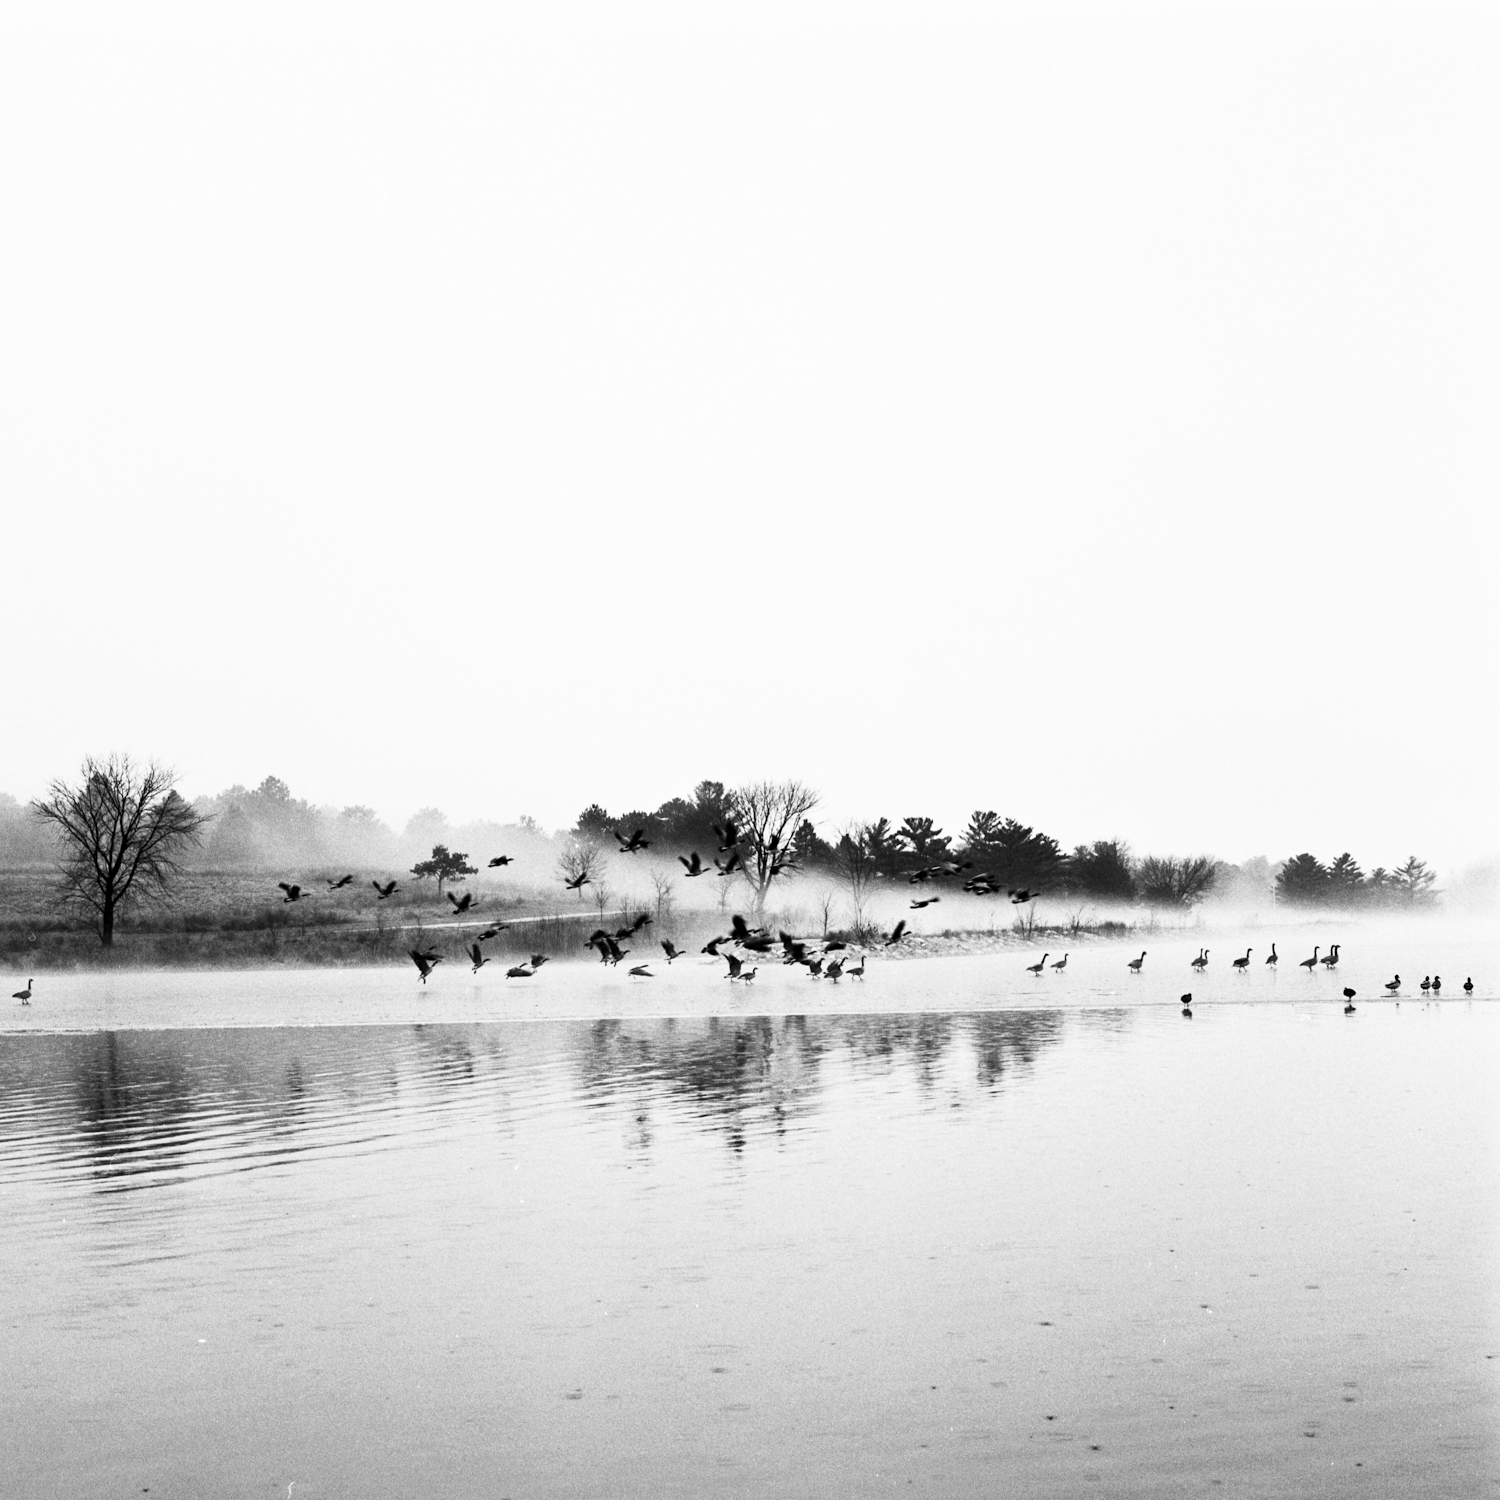 Copy of Geese, Fog, Lifting, Fine Art Black and White Photography, Nebraska Black and White Photography, Great Plains Landscape Photography, Nebraska Photography.